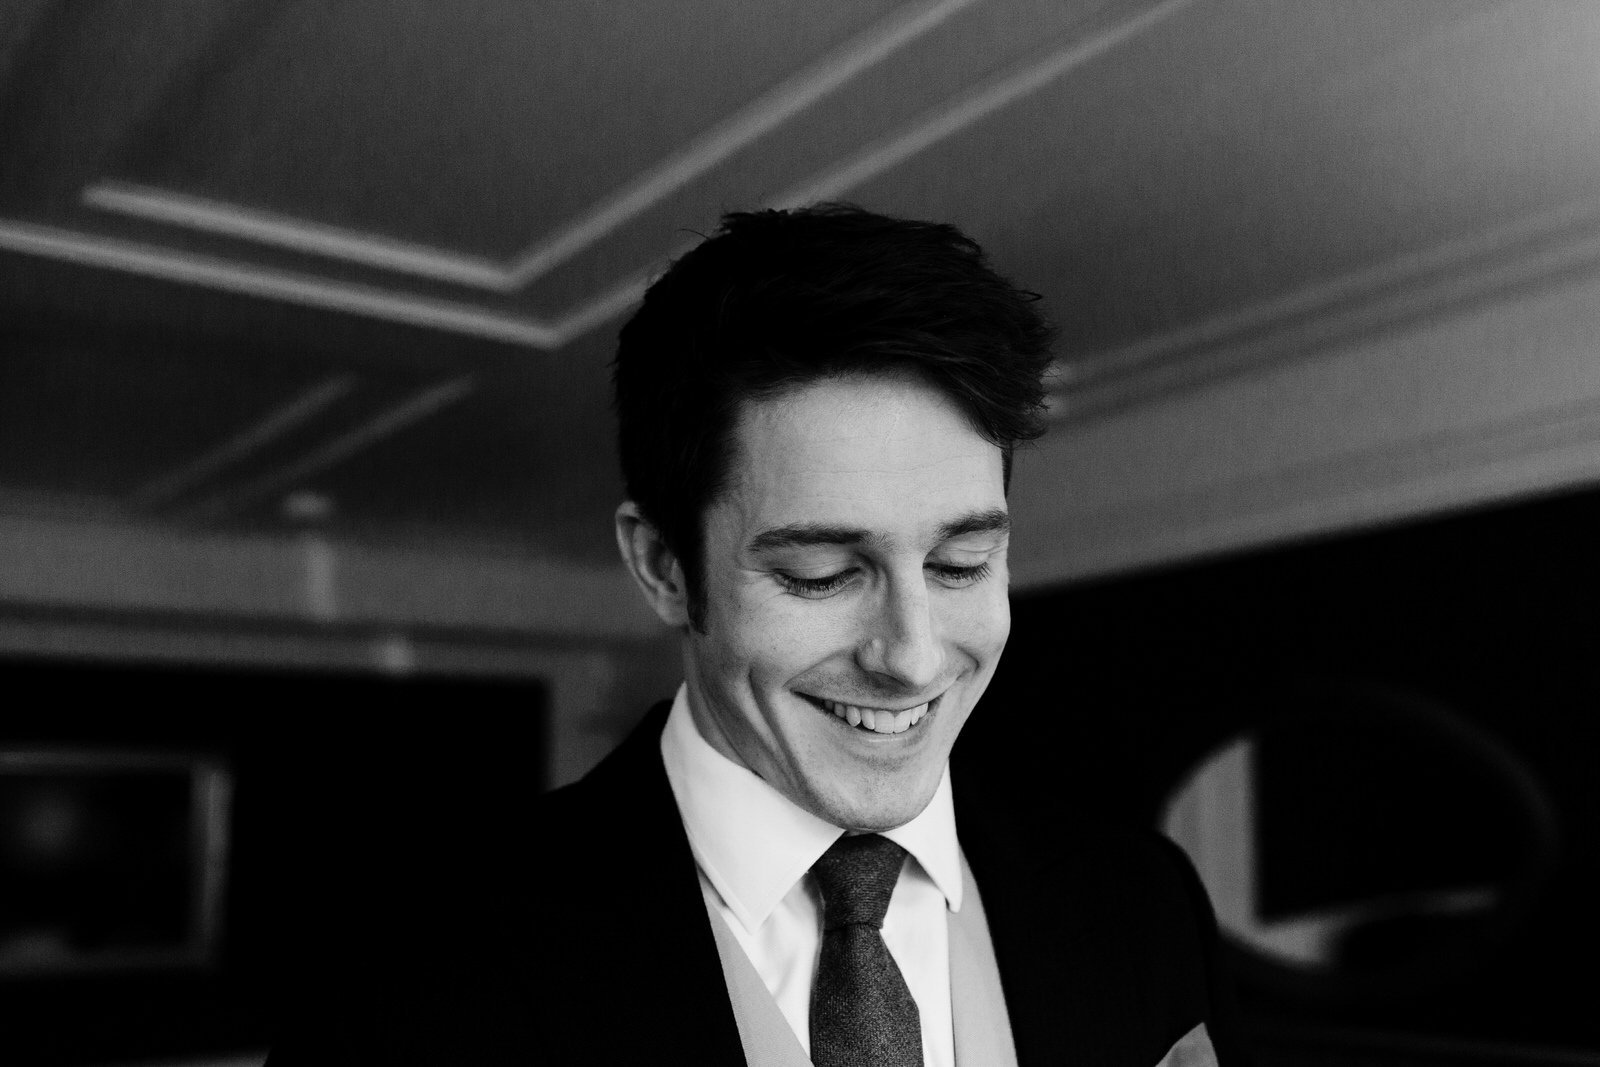 A groom is looking down and smiling.